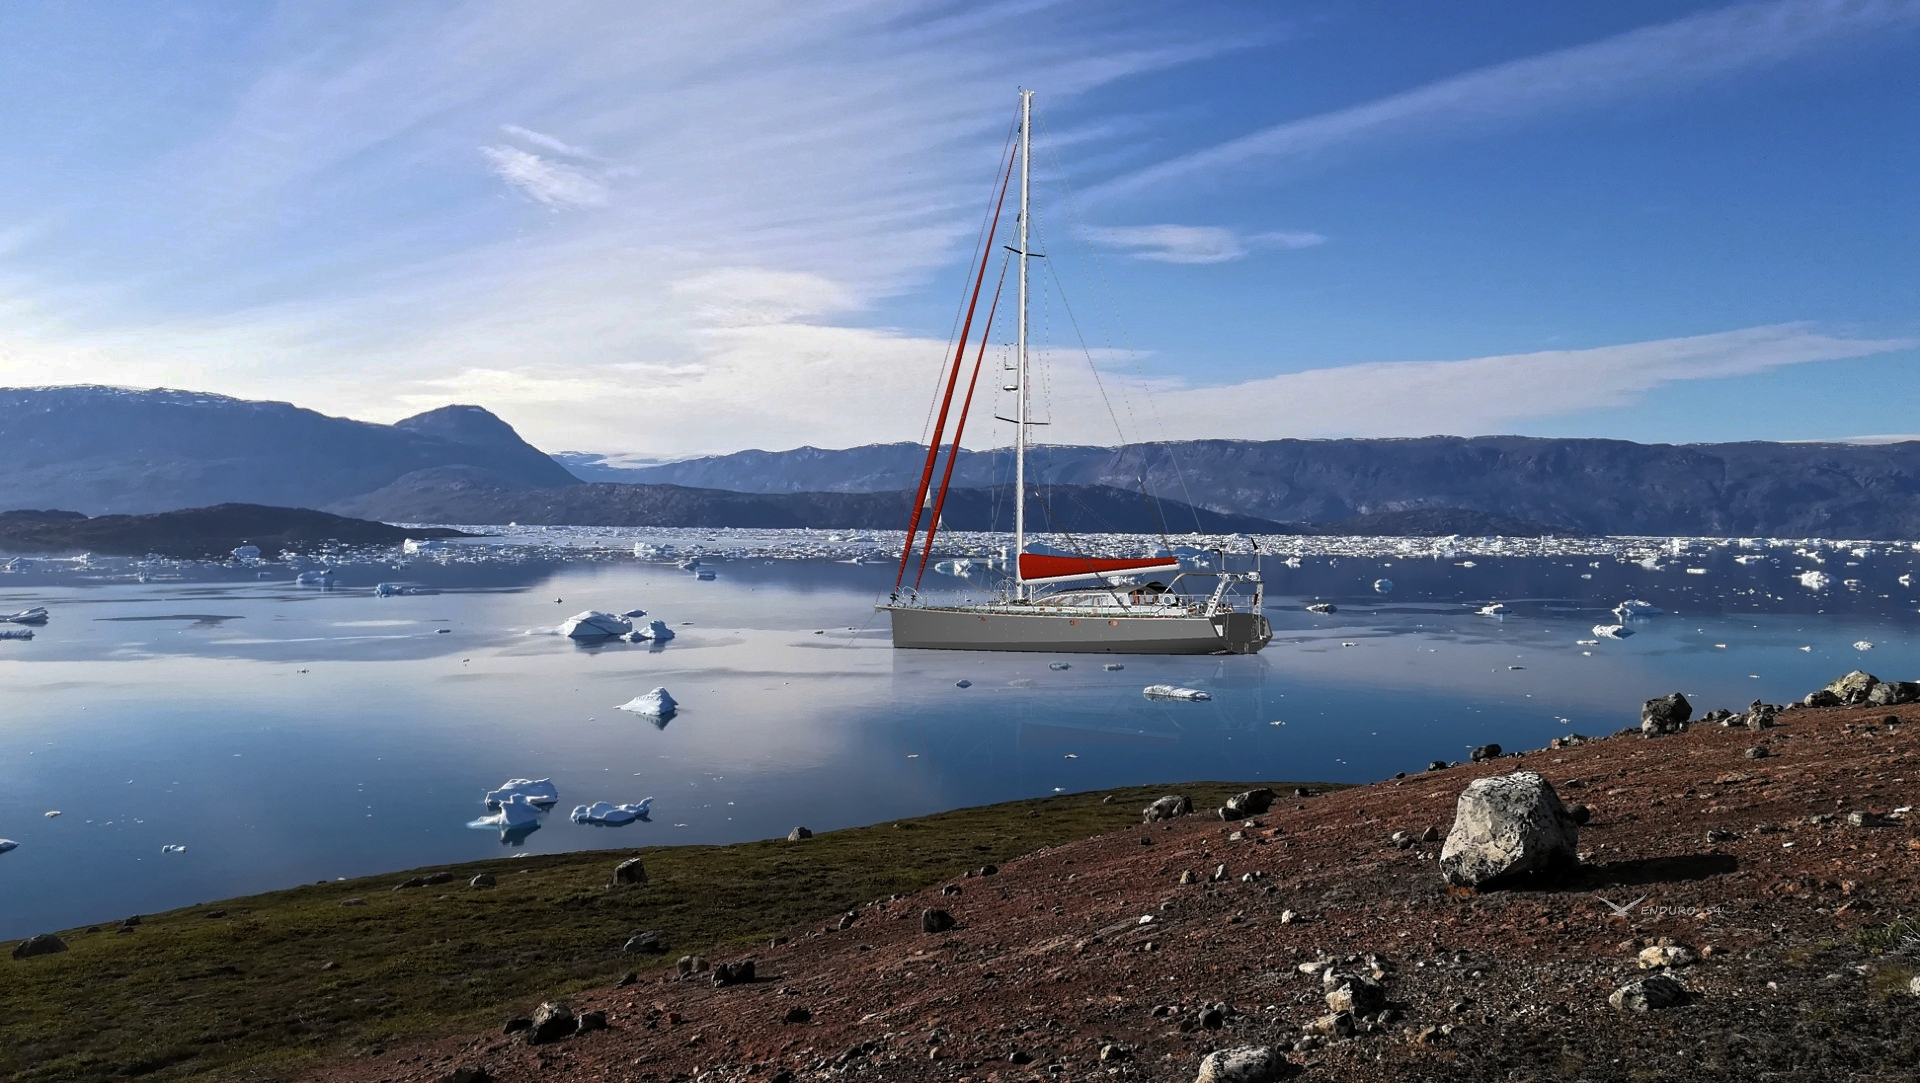 Sailboat at anchor in arctic ices